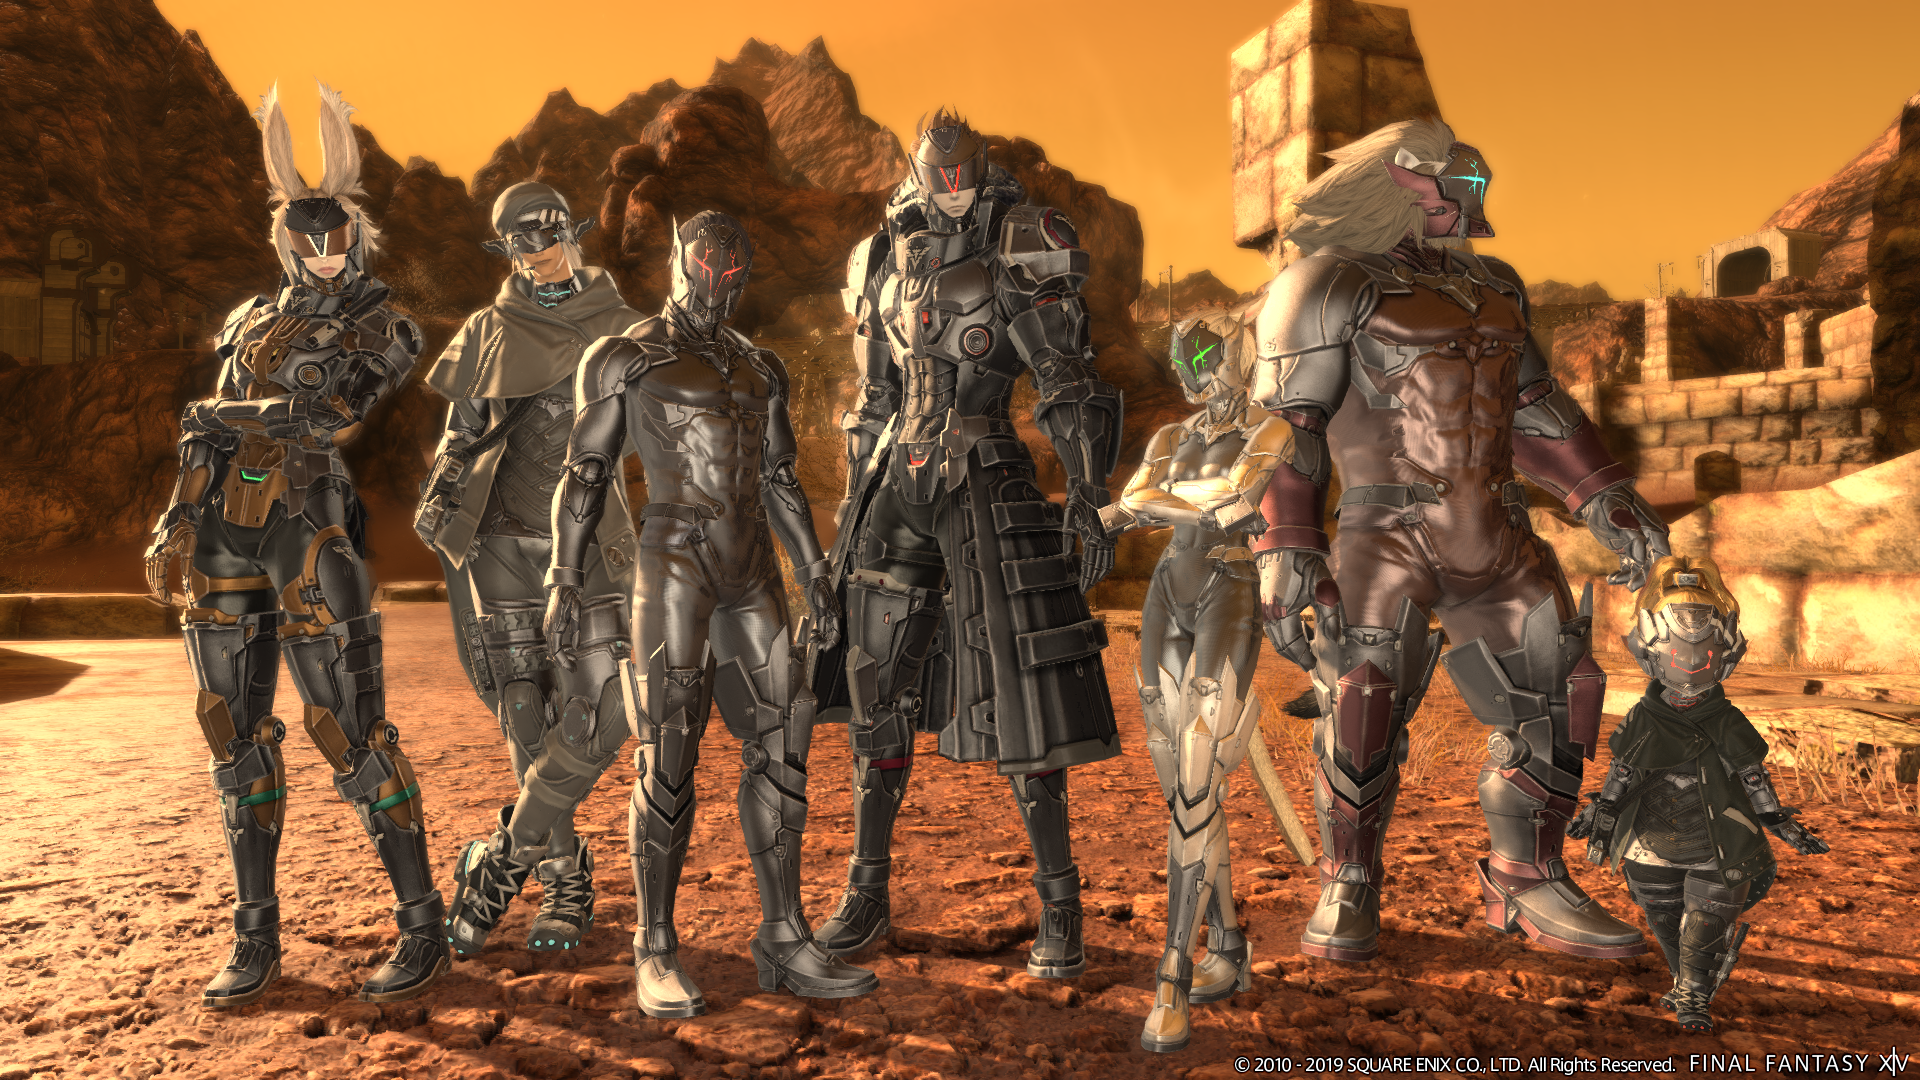 A New Batch Of Images Released Ahead Of Final Fantasy Xiv Patch